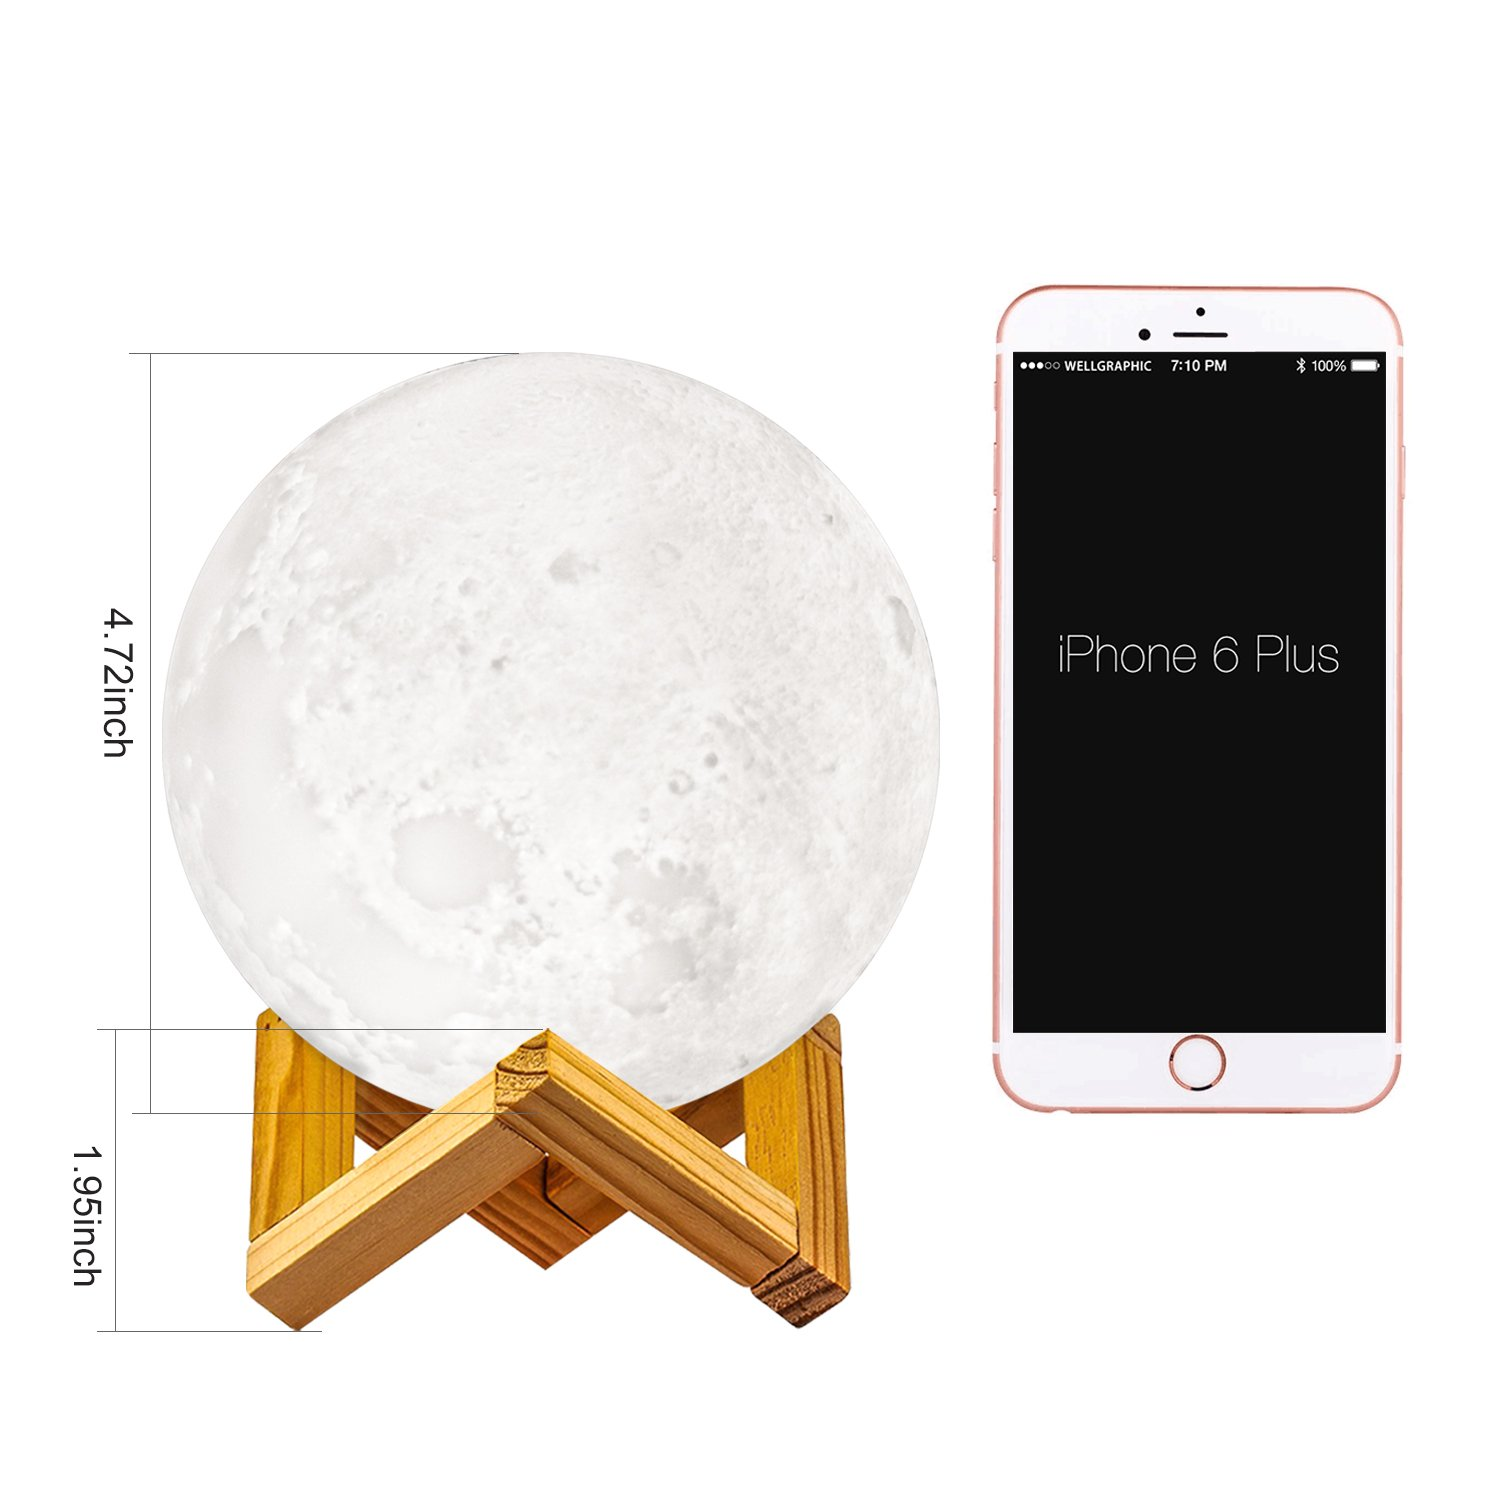 GDPETS Moon Lamp, 3D Printing Moon Night Light, Touch& Remote Control 16 Color Decorative Light(4.7 Inch) by GDPETS (Image #3)